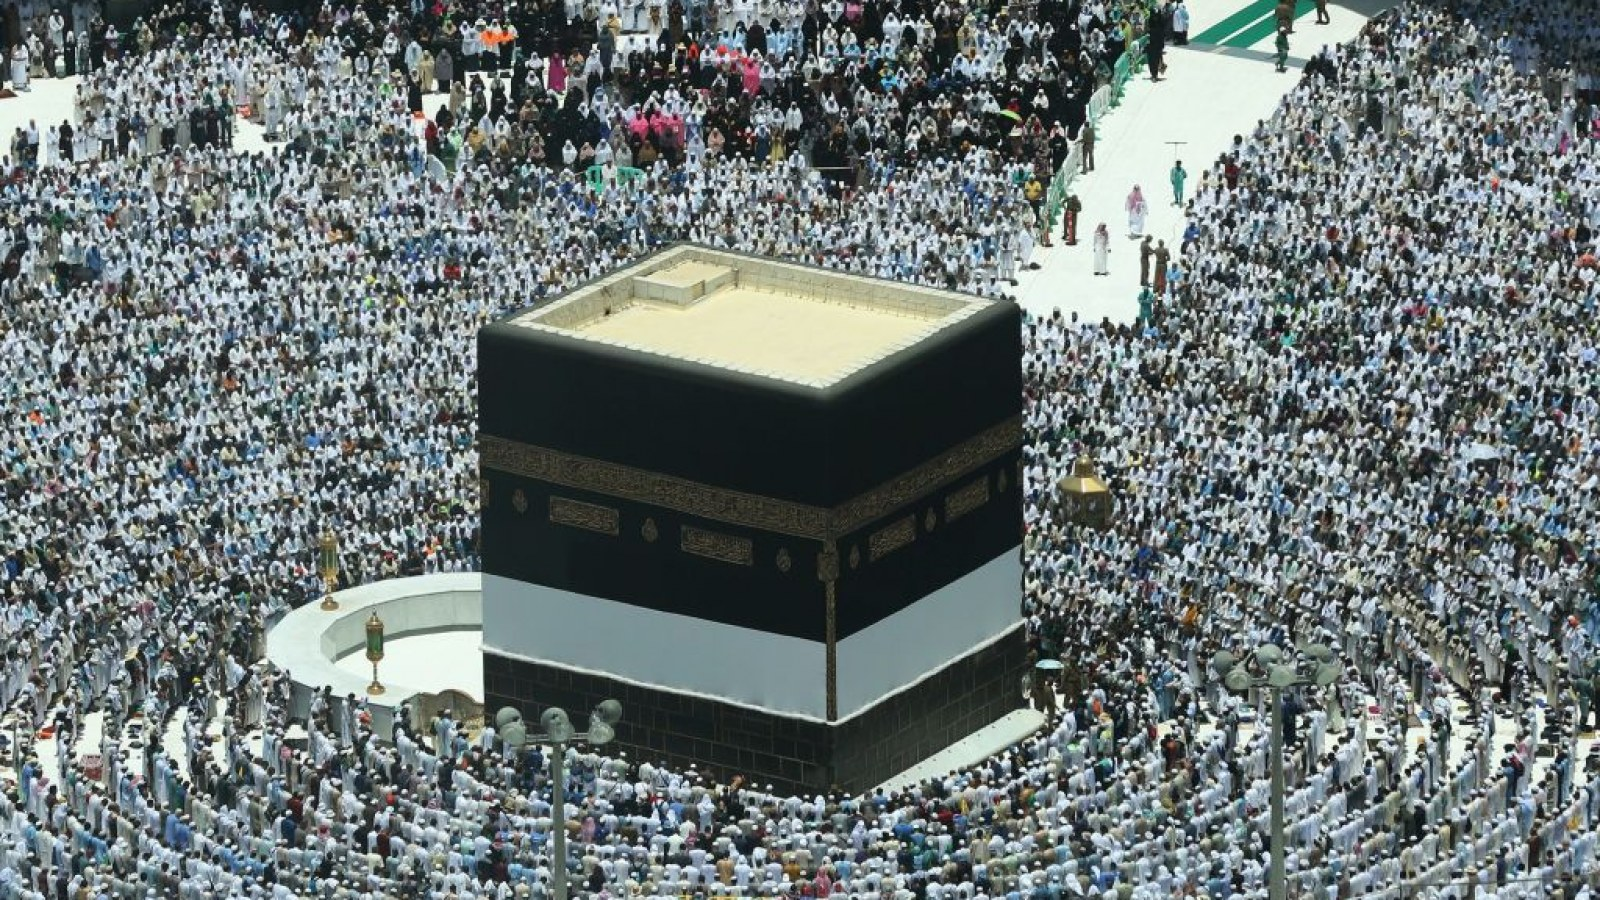 What Is Hajj? Here Are the Rituals Muslims Perform During the Pilgrimage